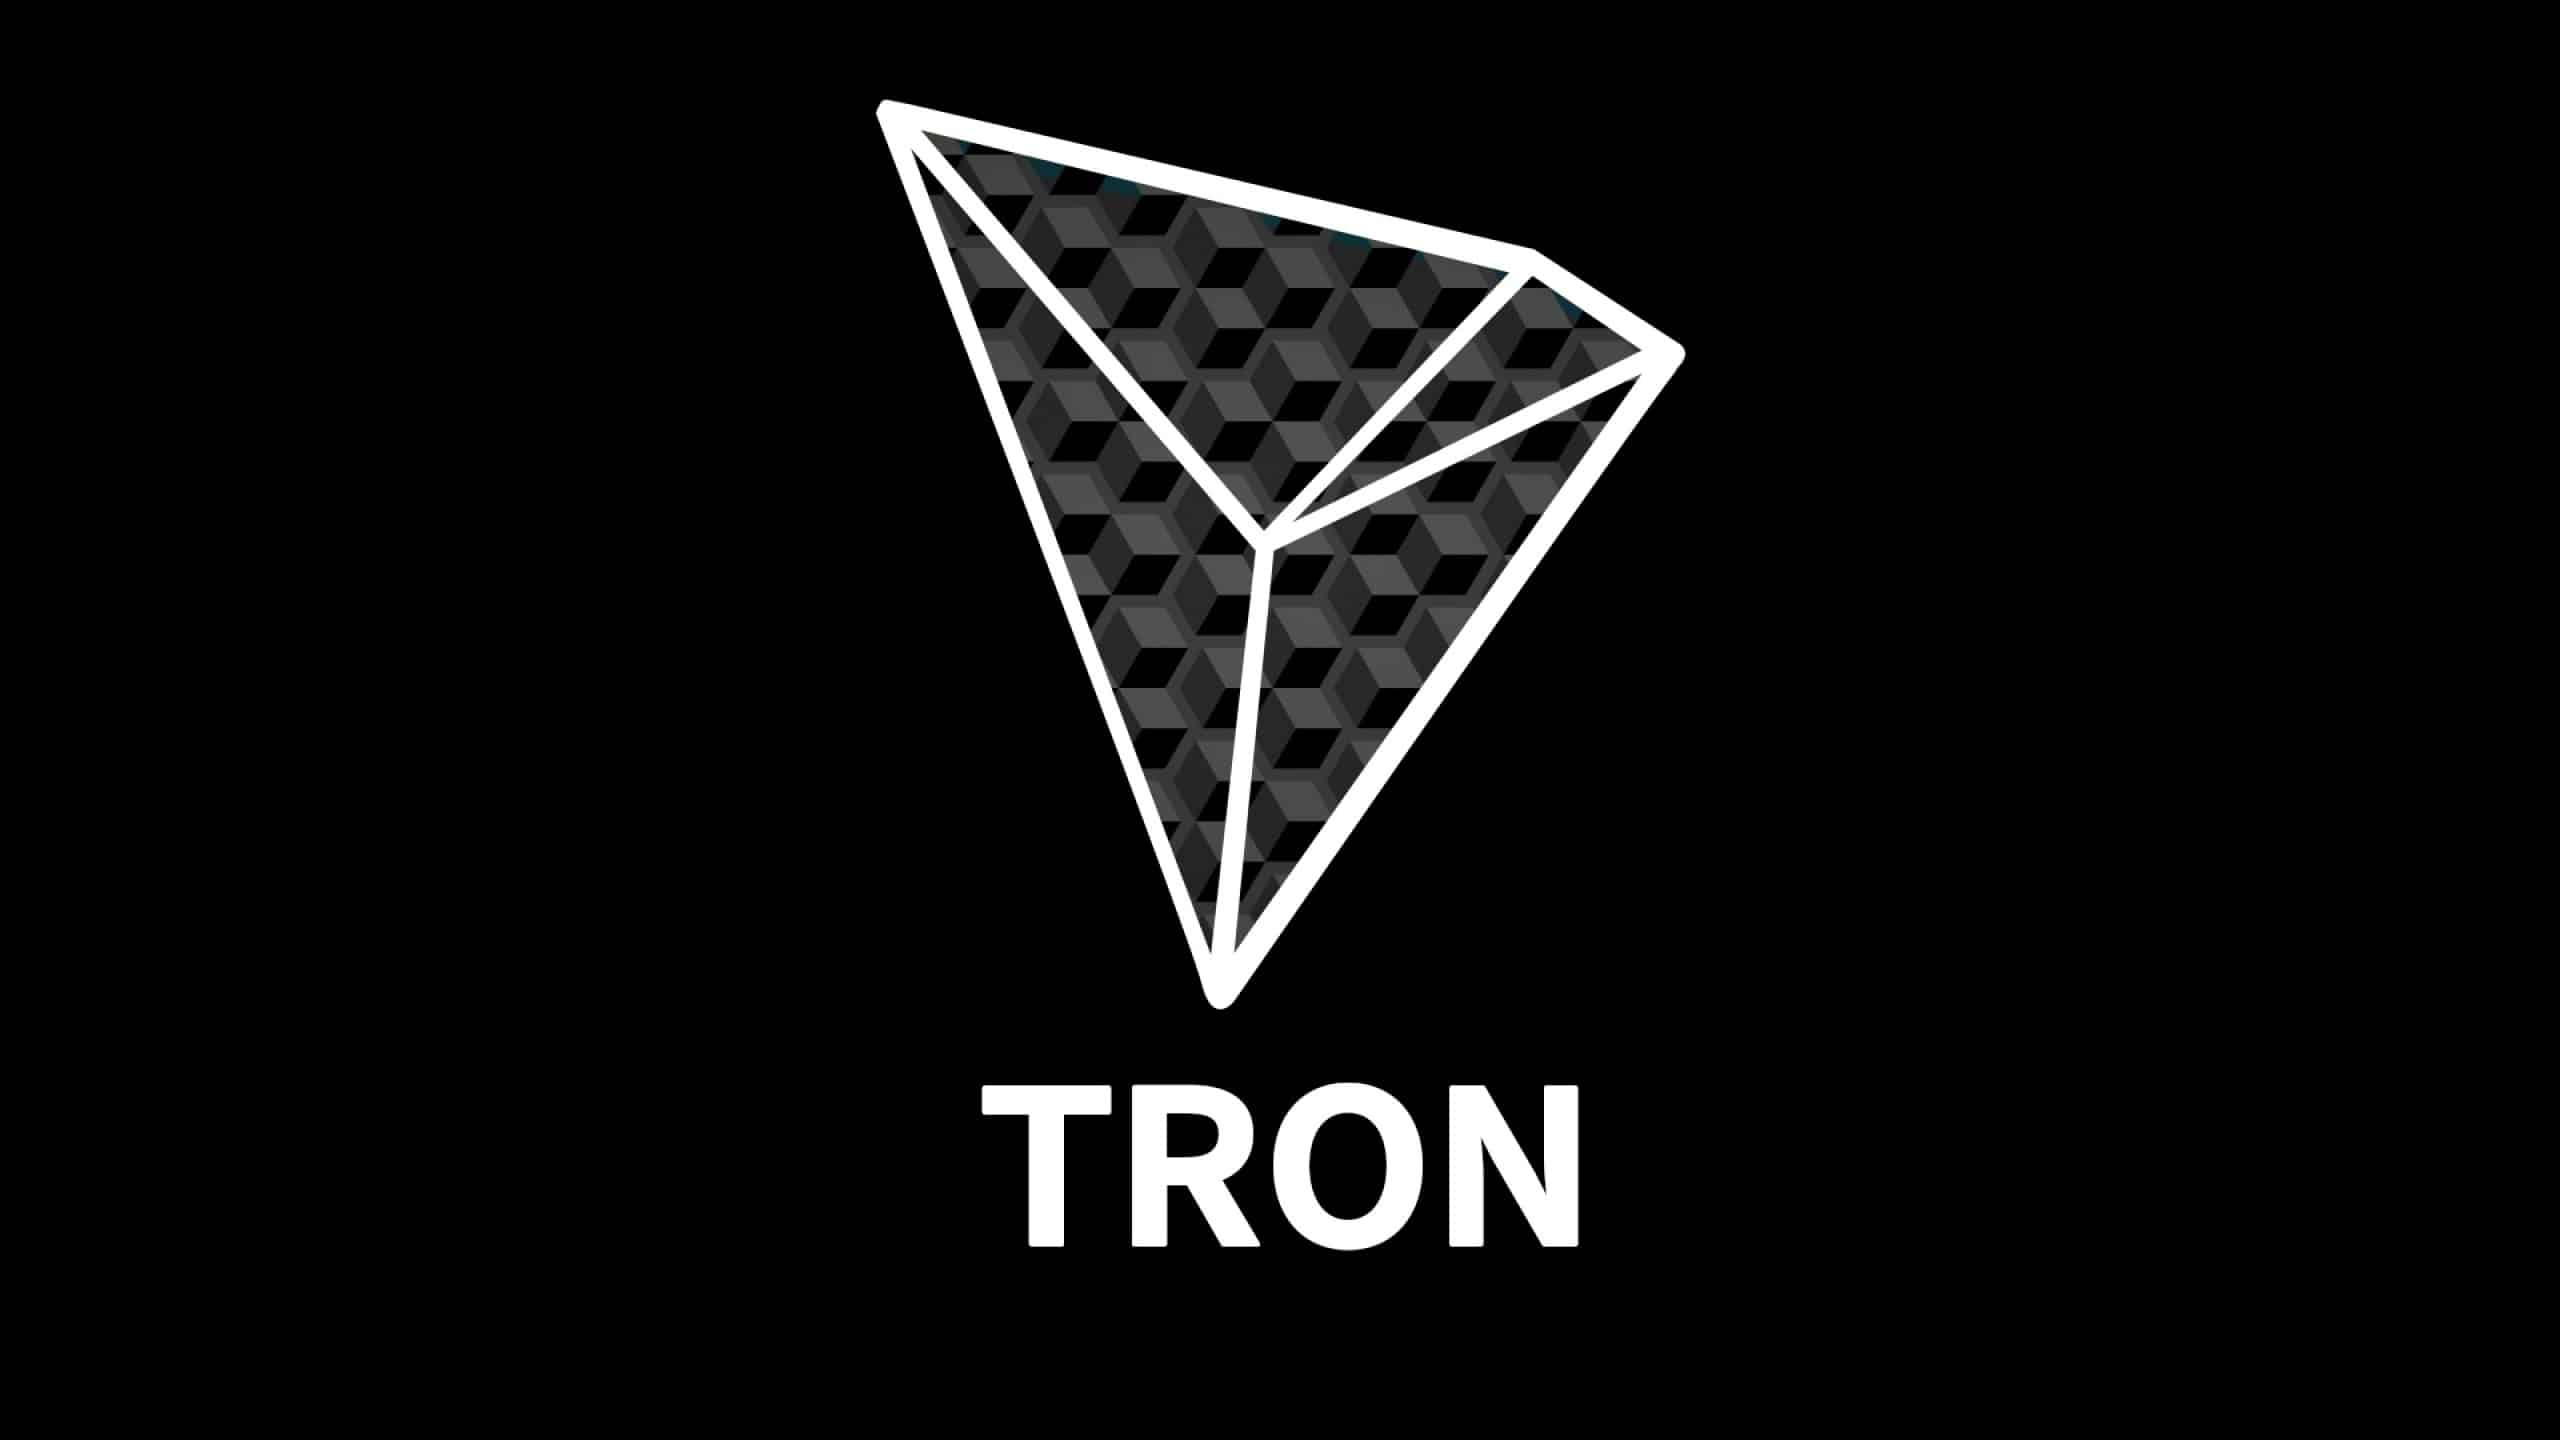 Tron Price Drops Under Extreme Market Pressure to $0.014